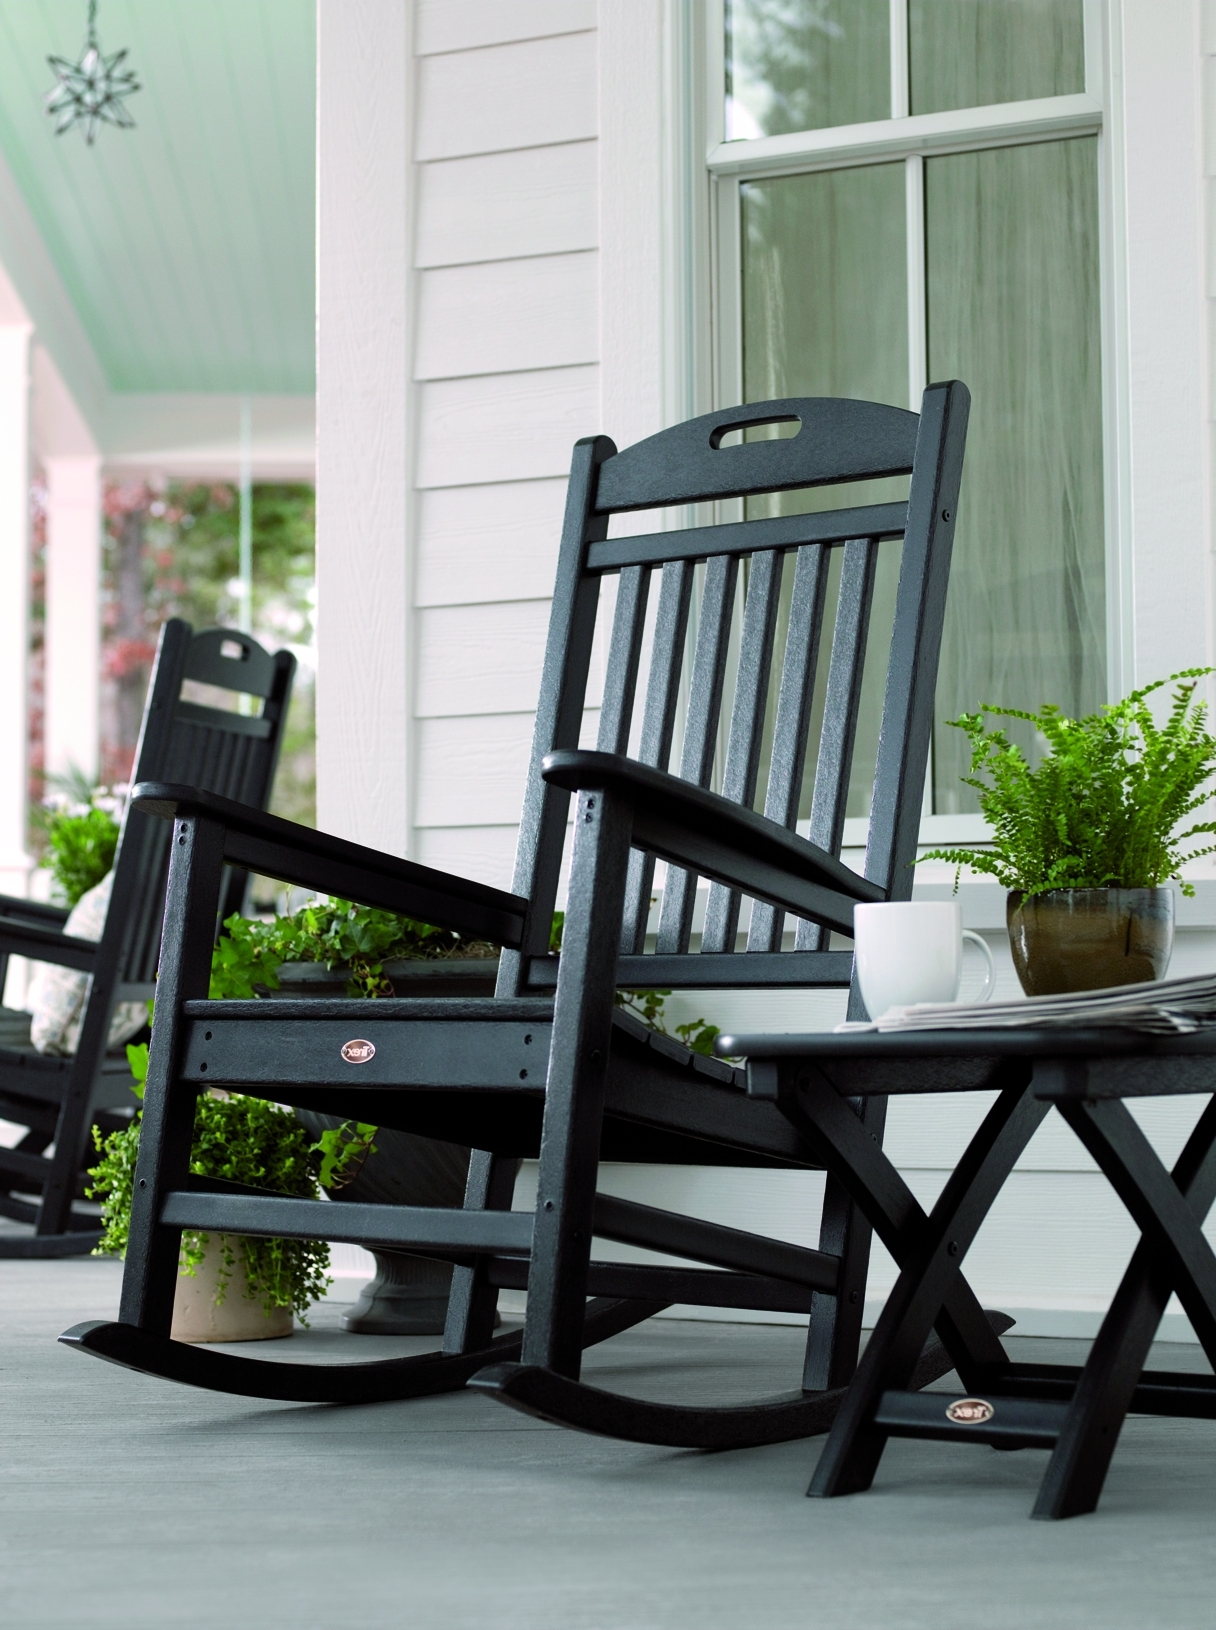 Widely Used Elegant Porch Rocking Chairs Ideas F20x About Remodel Most Regarding Rocking Chairs For Porch (View 3 of 20)